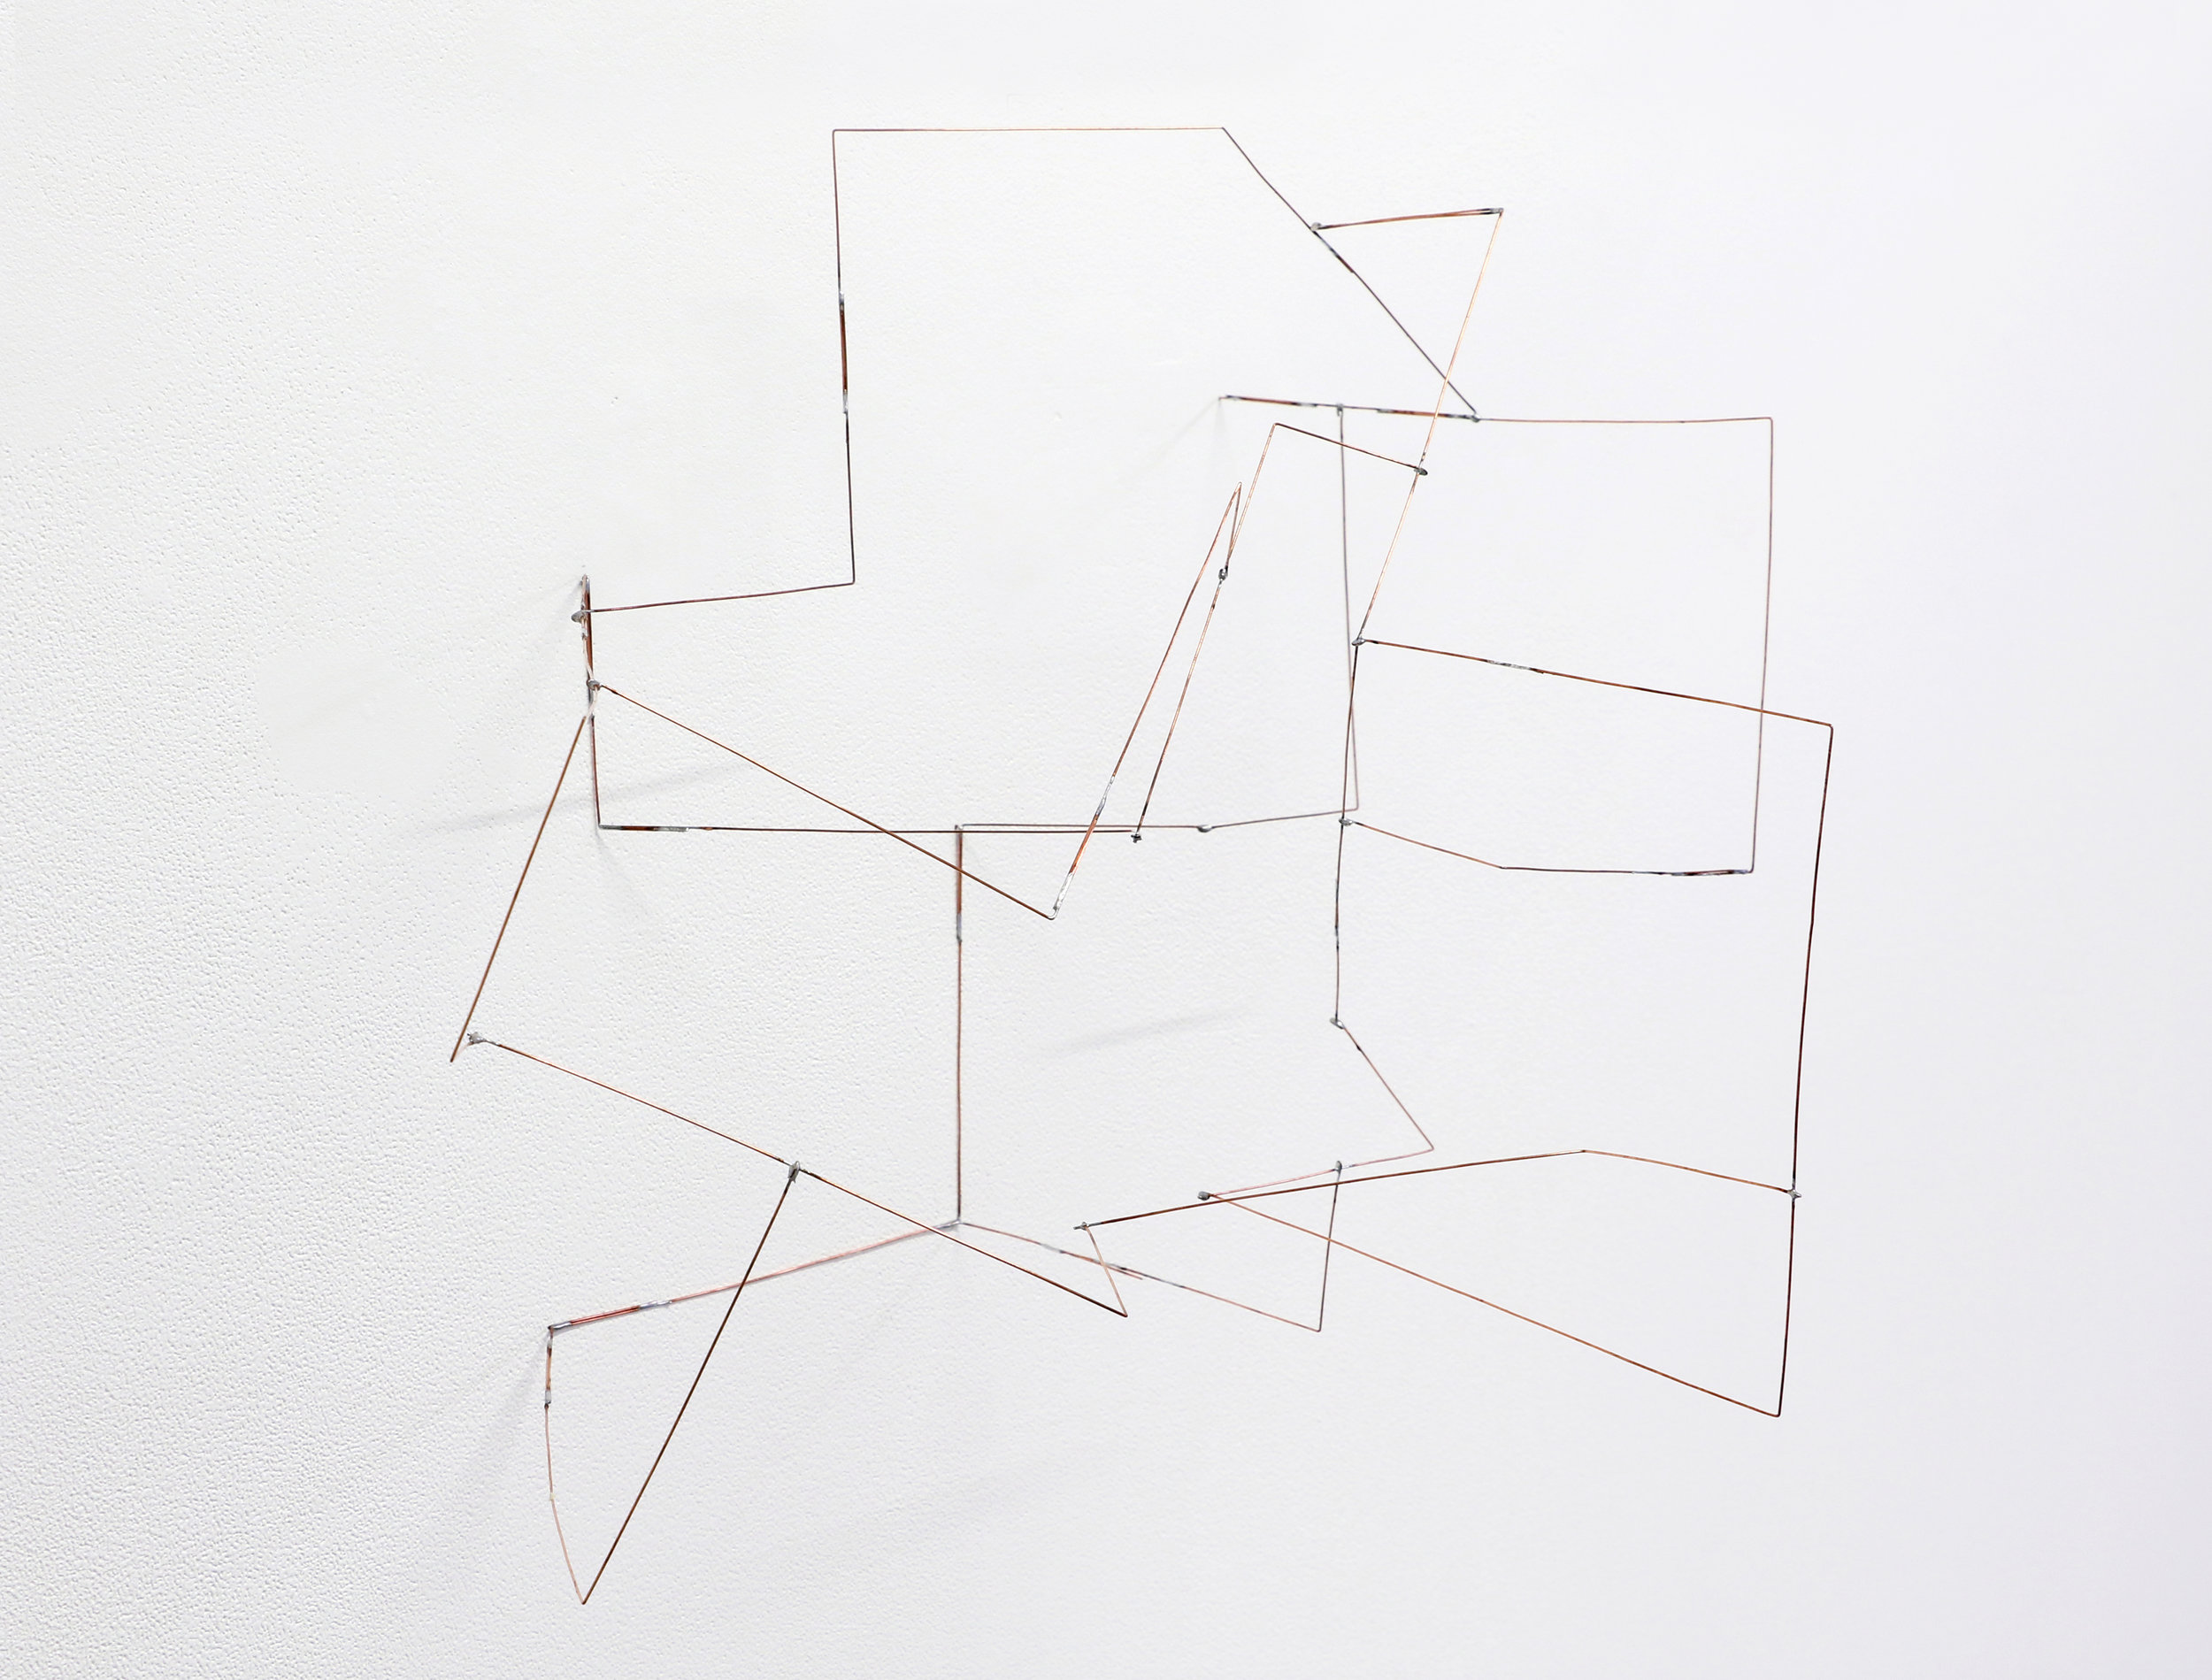 """Melling , 2019, soldered copper-coated steel wire, 14"""" x 22"""" x 14"""""""